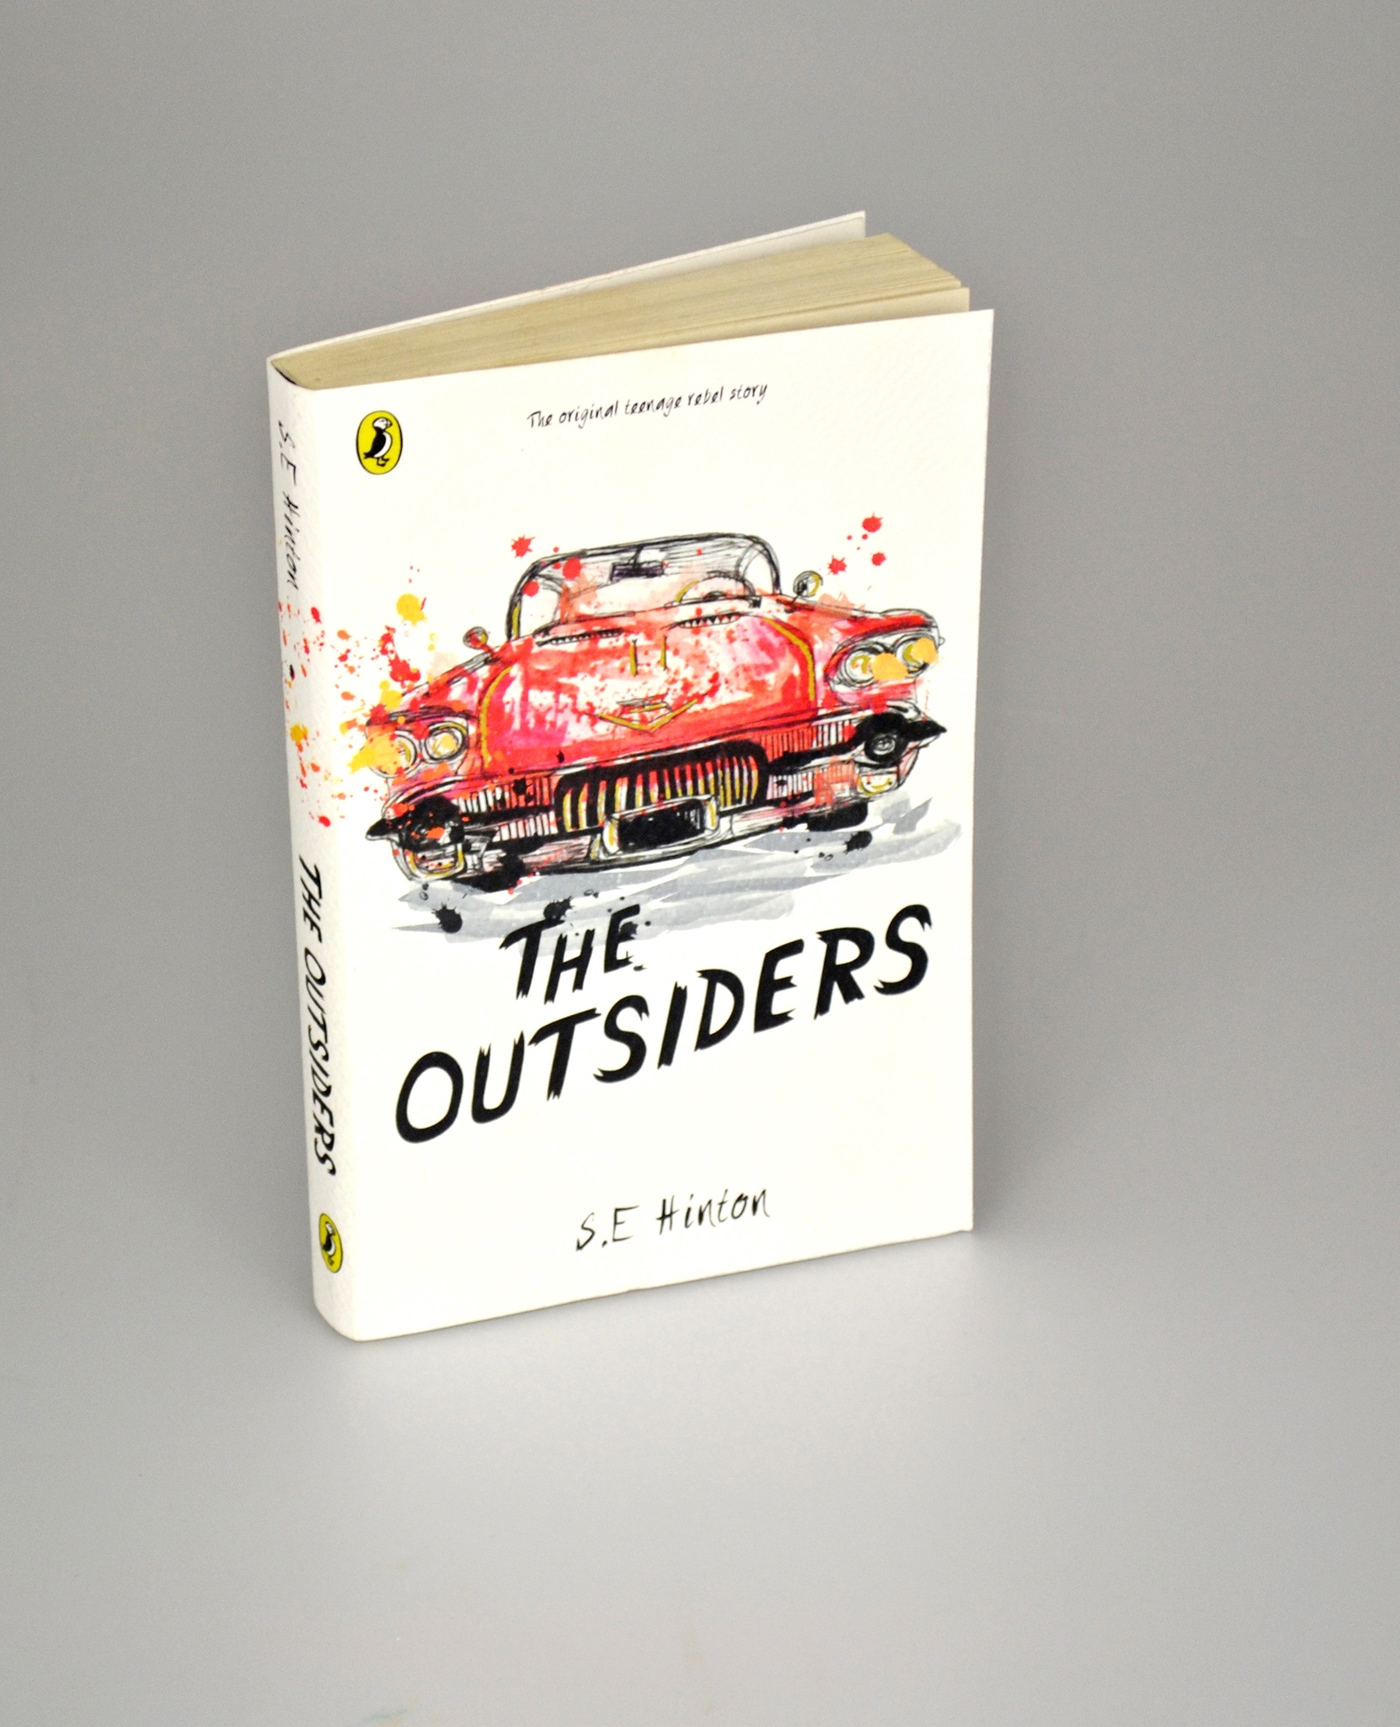 Book Covers Using Typography : Puffin design awards the outsiders book cover on behance